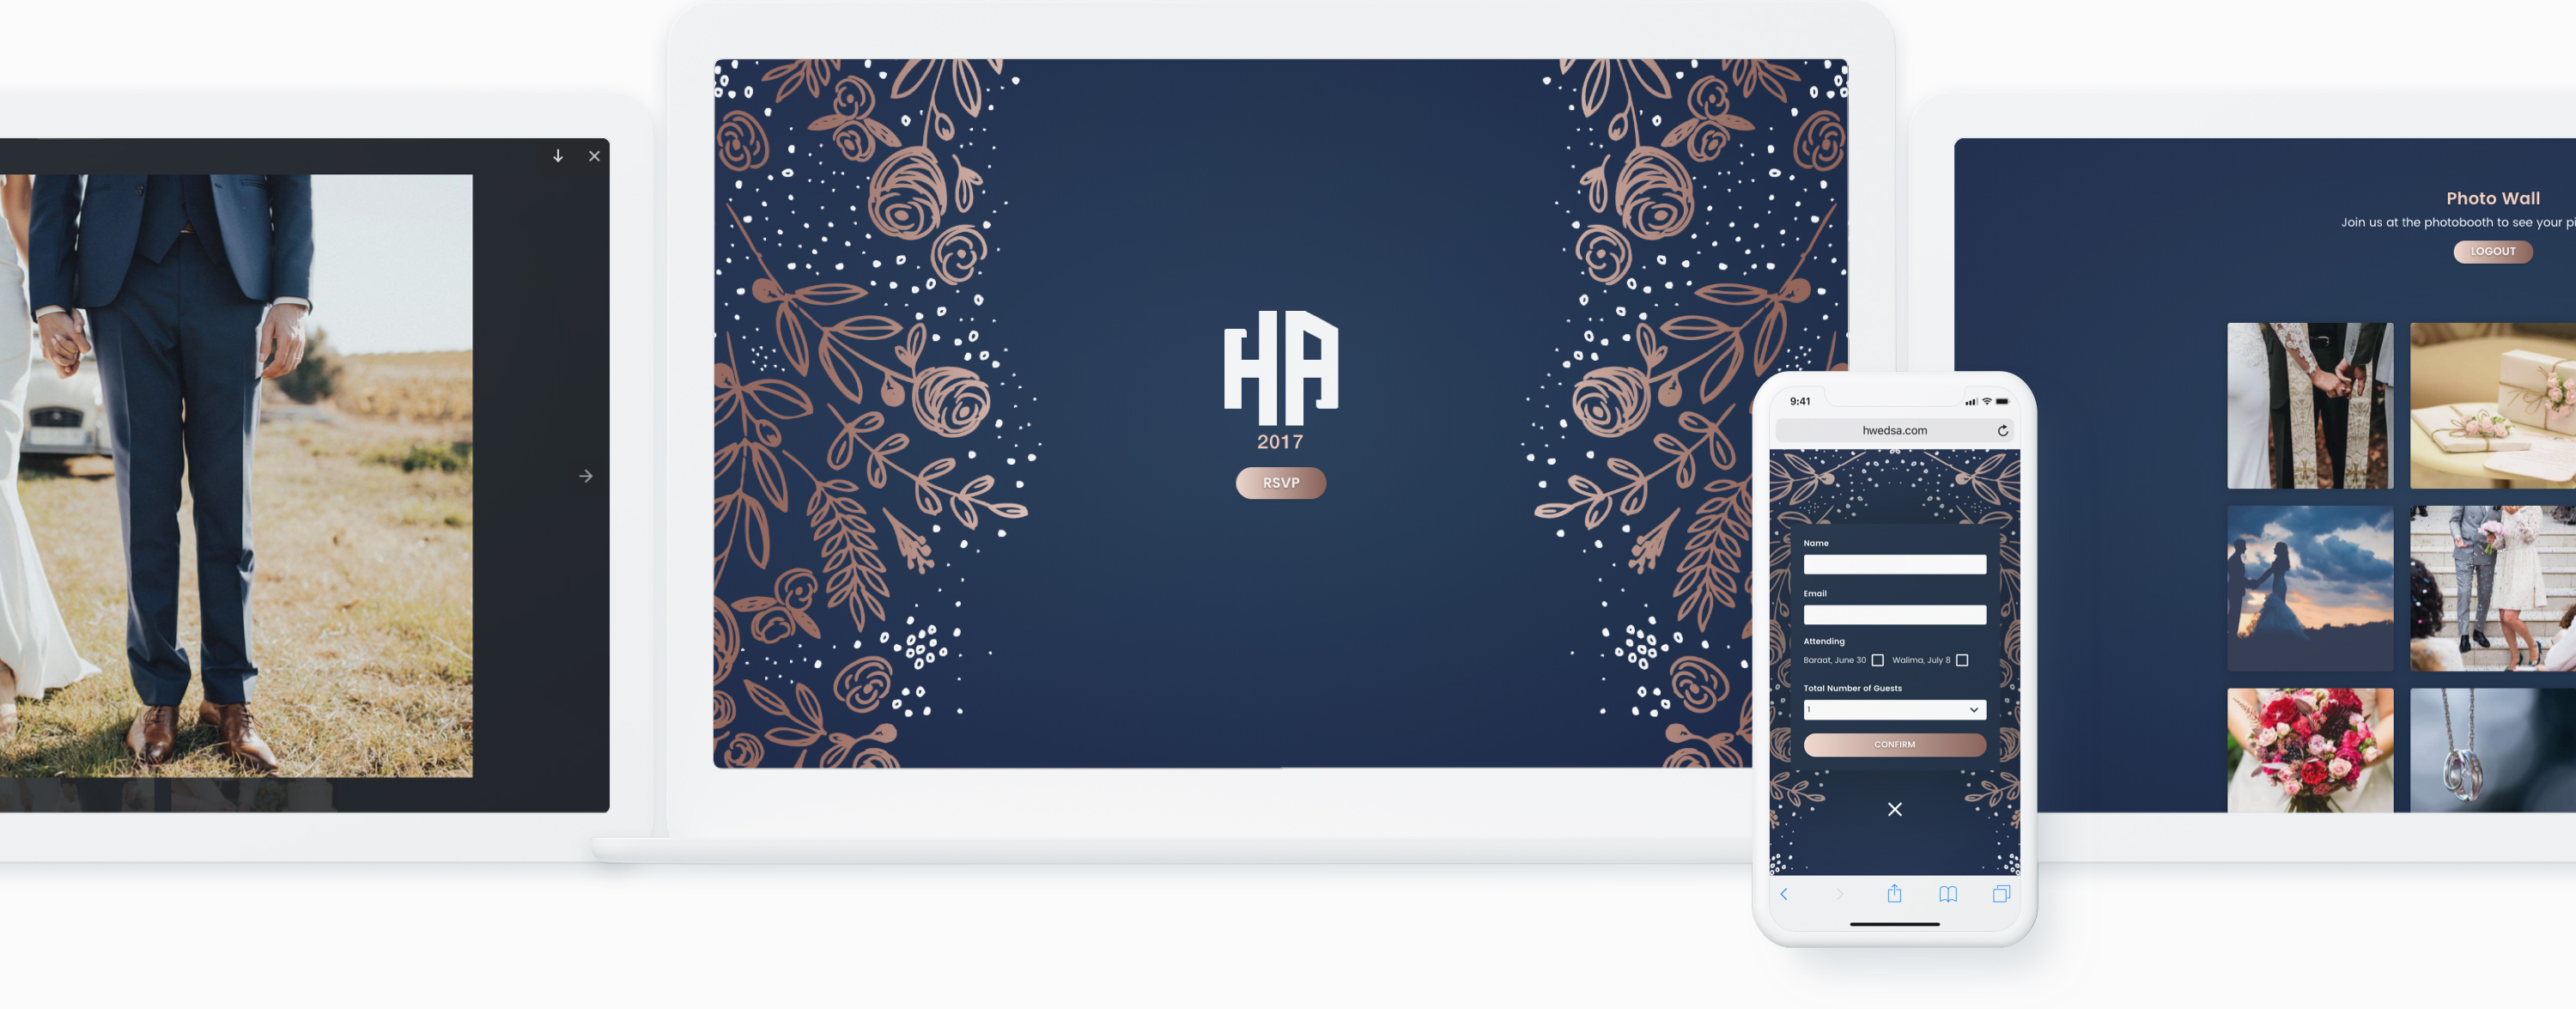 Responsive Mockup of H Weds A